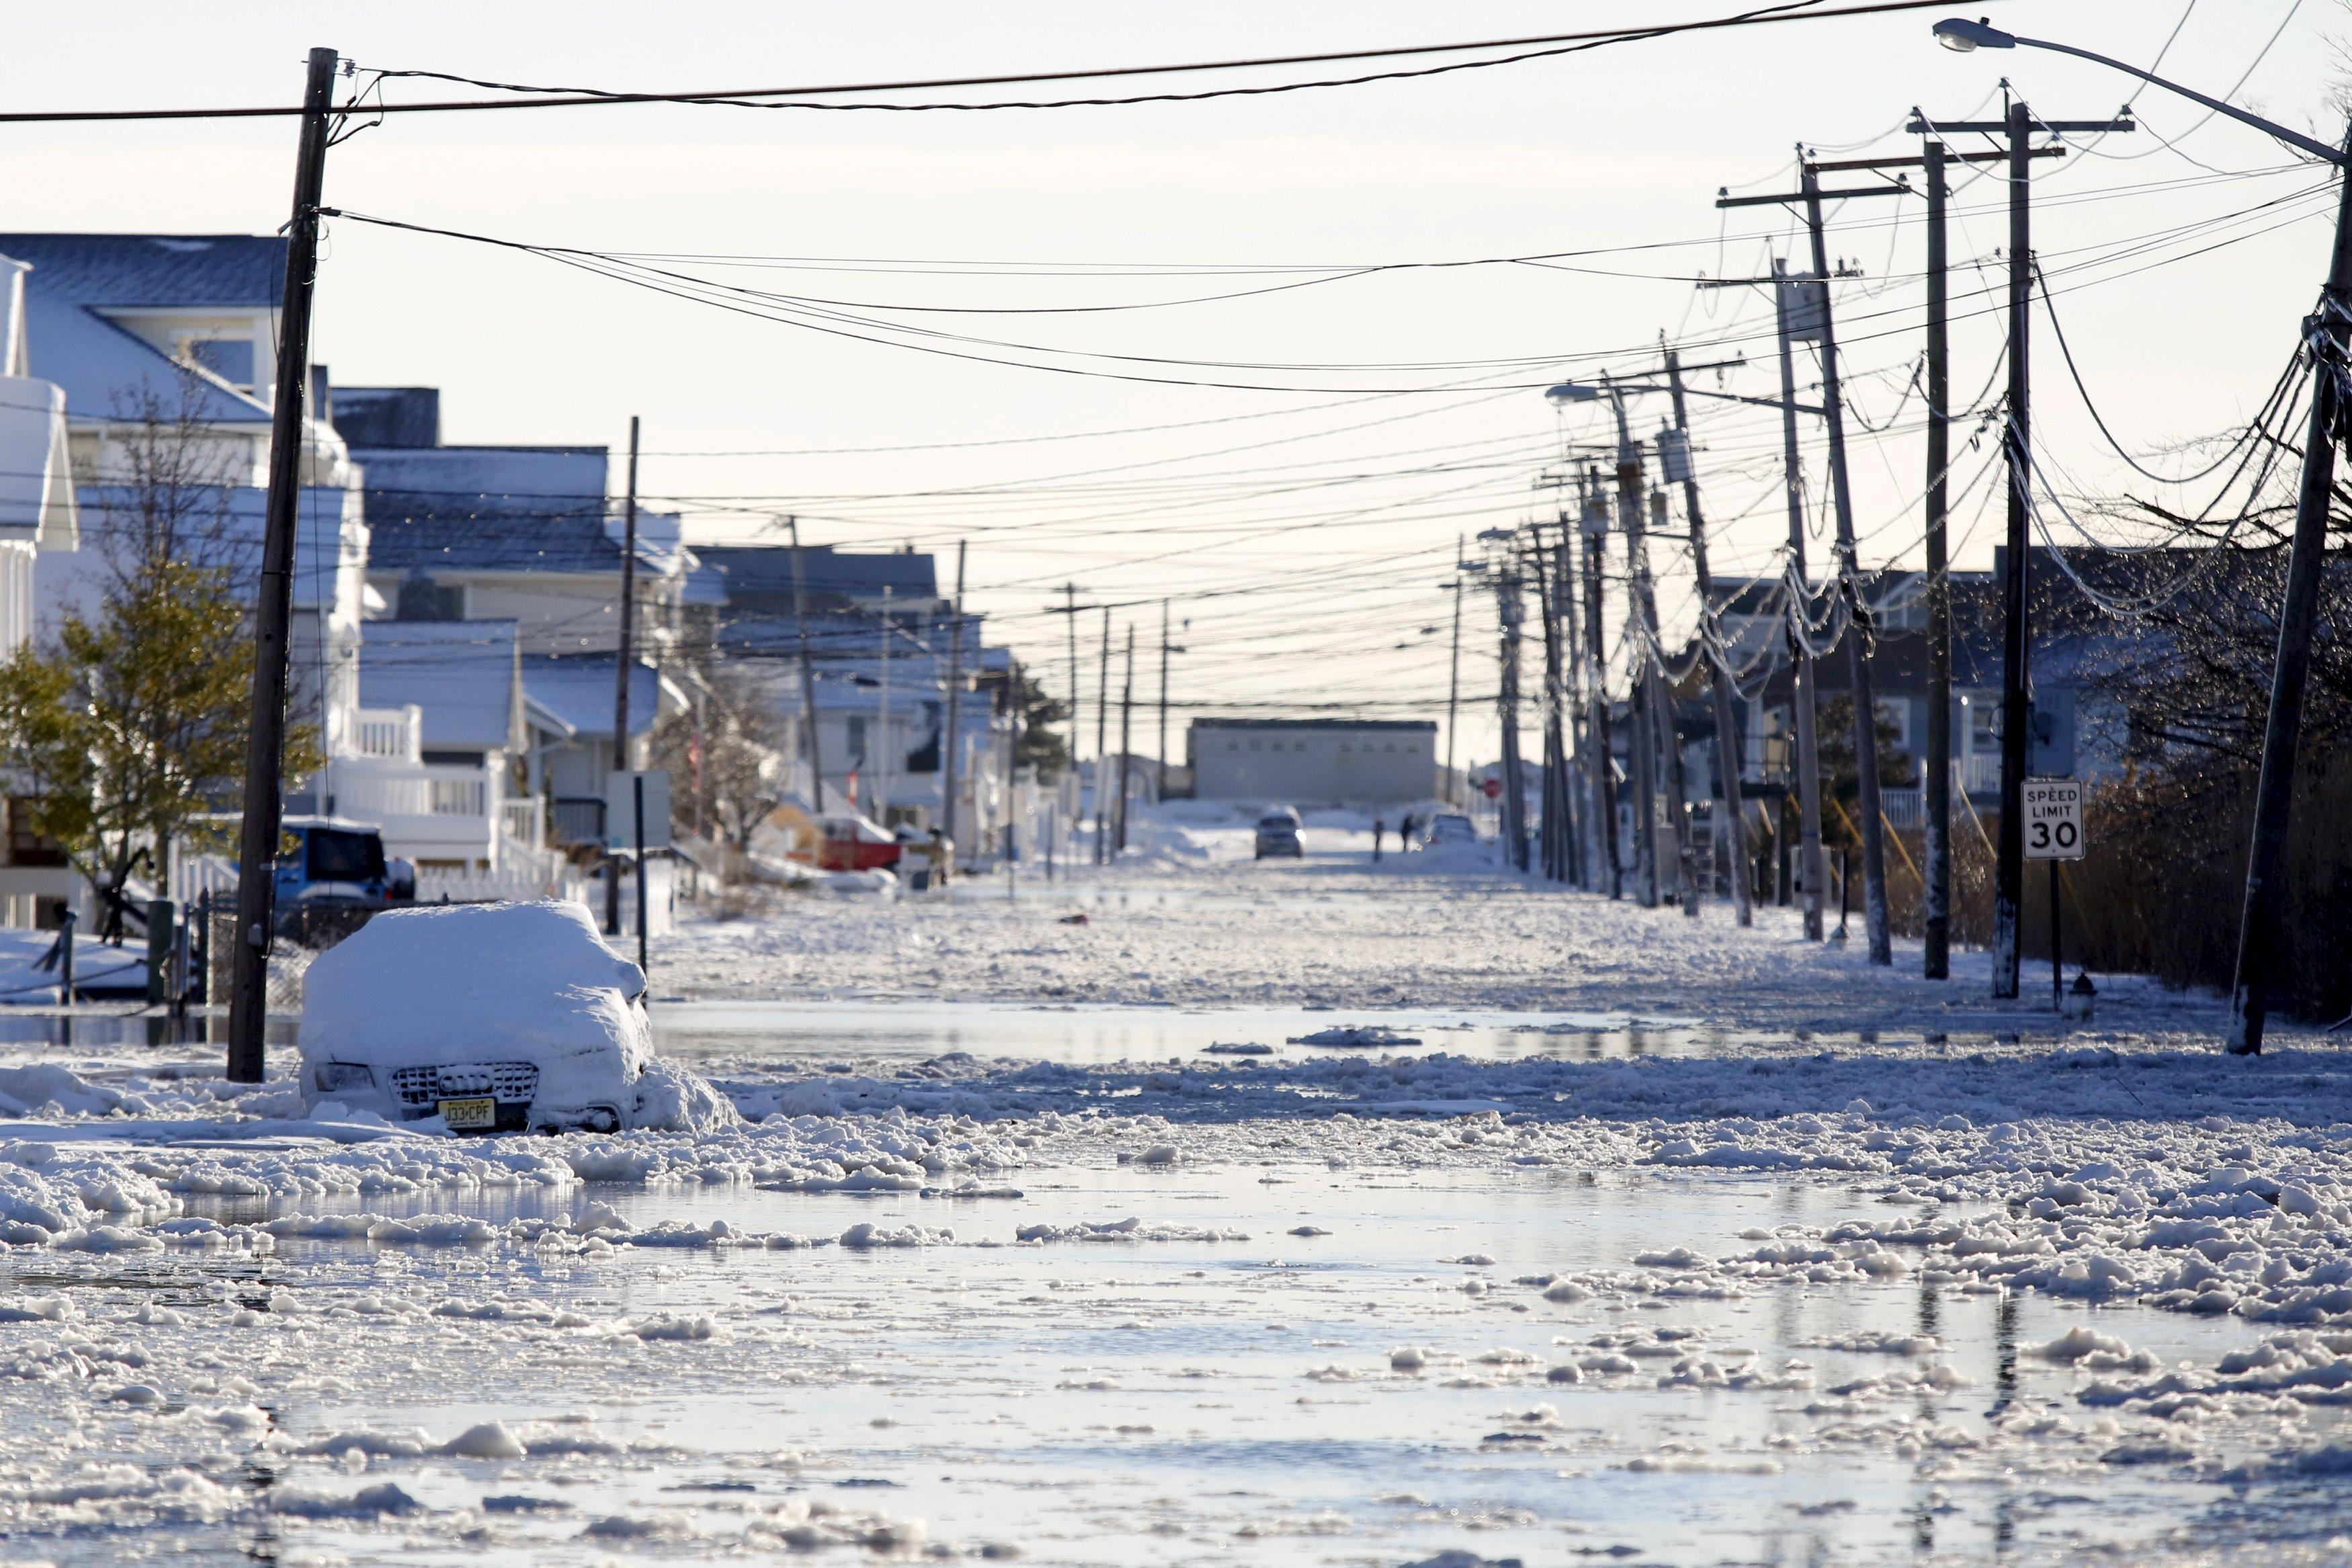 Floodwaters cover Brielle Road after a winter storm in Manasquan, New Jersey, January 24, 2016. A morning high tide surge of 2 feet followed snowfall of about 2 feet in the first major storm of the season. REUTERS/Dominick Reuter